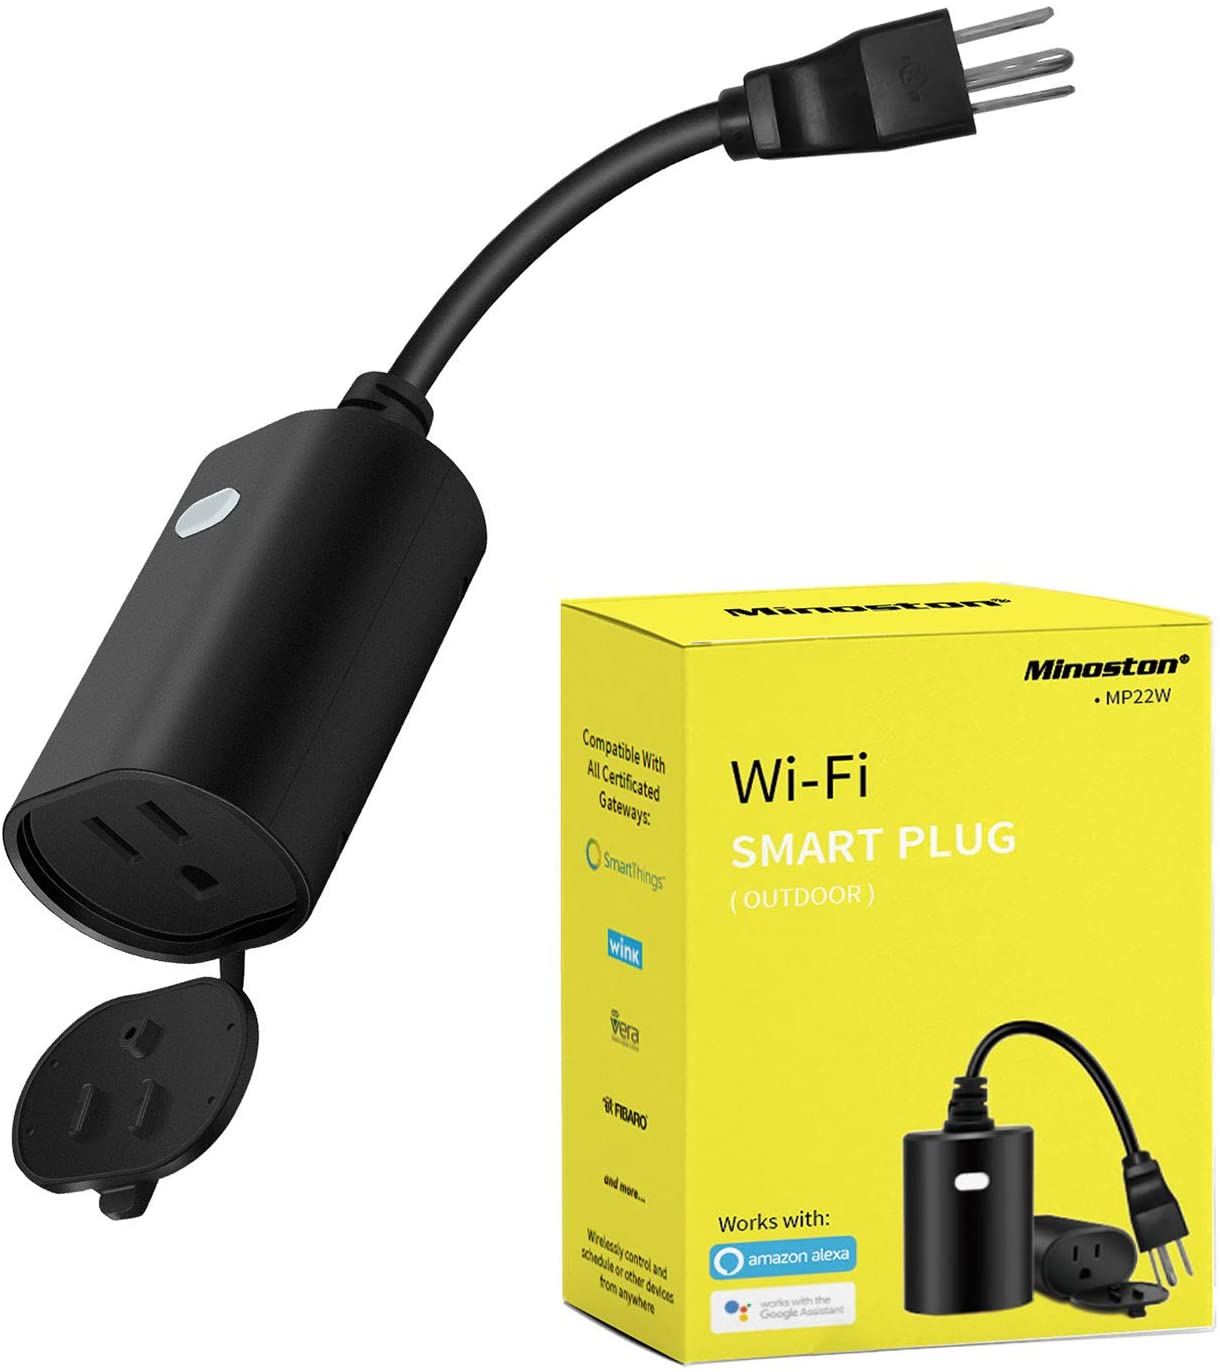 Outdoor Smart Plug WiFi Outlet Heavy Duty Plug-in Outlet, Remote Control, Waterproof, Compatible with Alexa Google Assistant, No Hub Required, Black(MP22W)